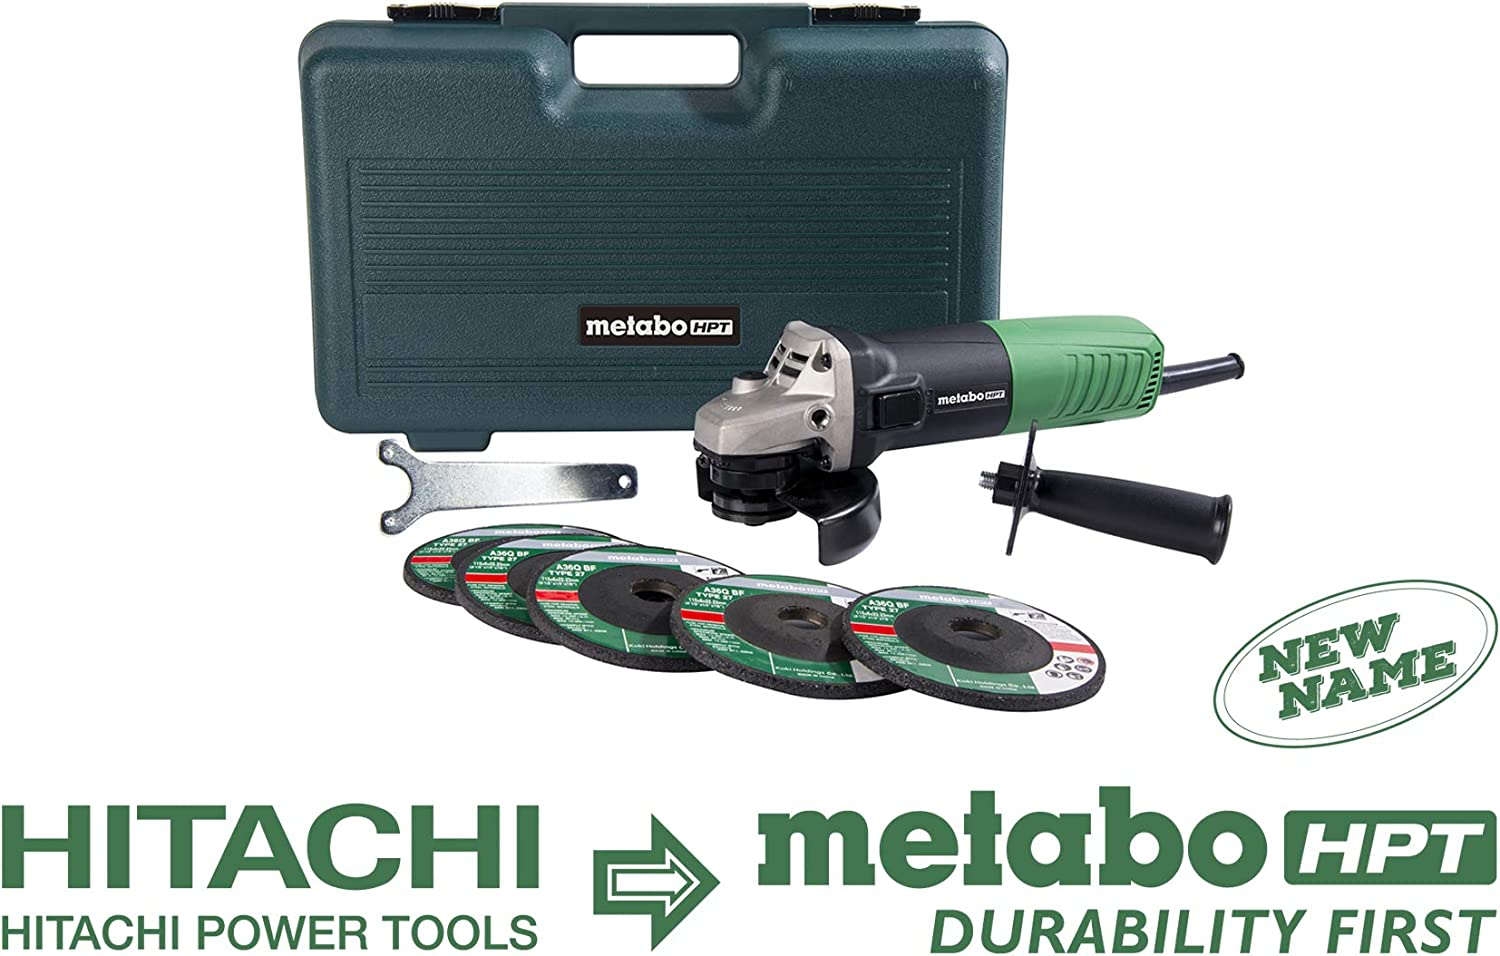 Metabo HPT G12SR4 4-1 2-Inch Angle Grinder, Includes 5 Grinding Wheels and Hard Case, 6.2-Amp Motor, Compact and Lightweight, 5 Year Warranty